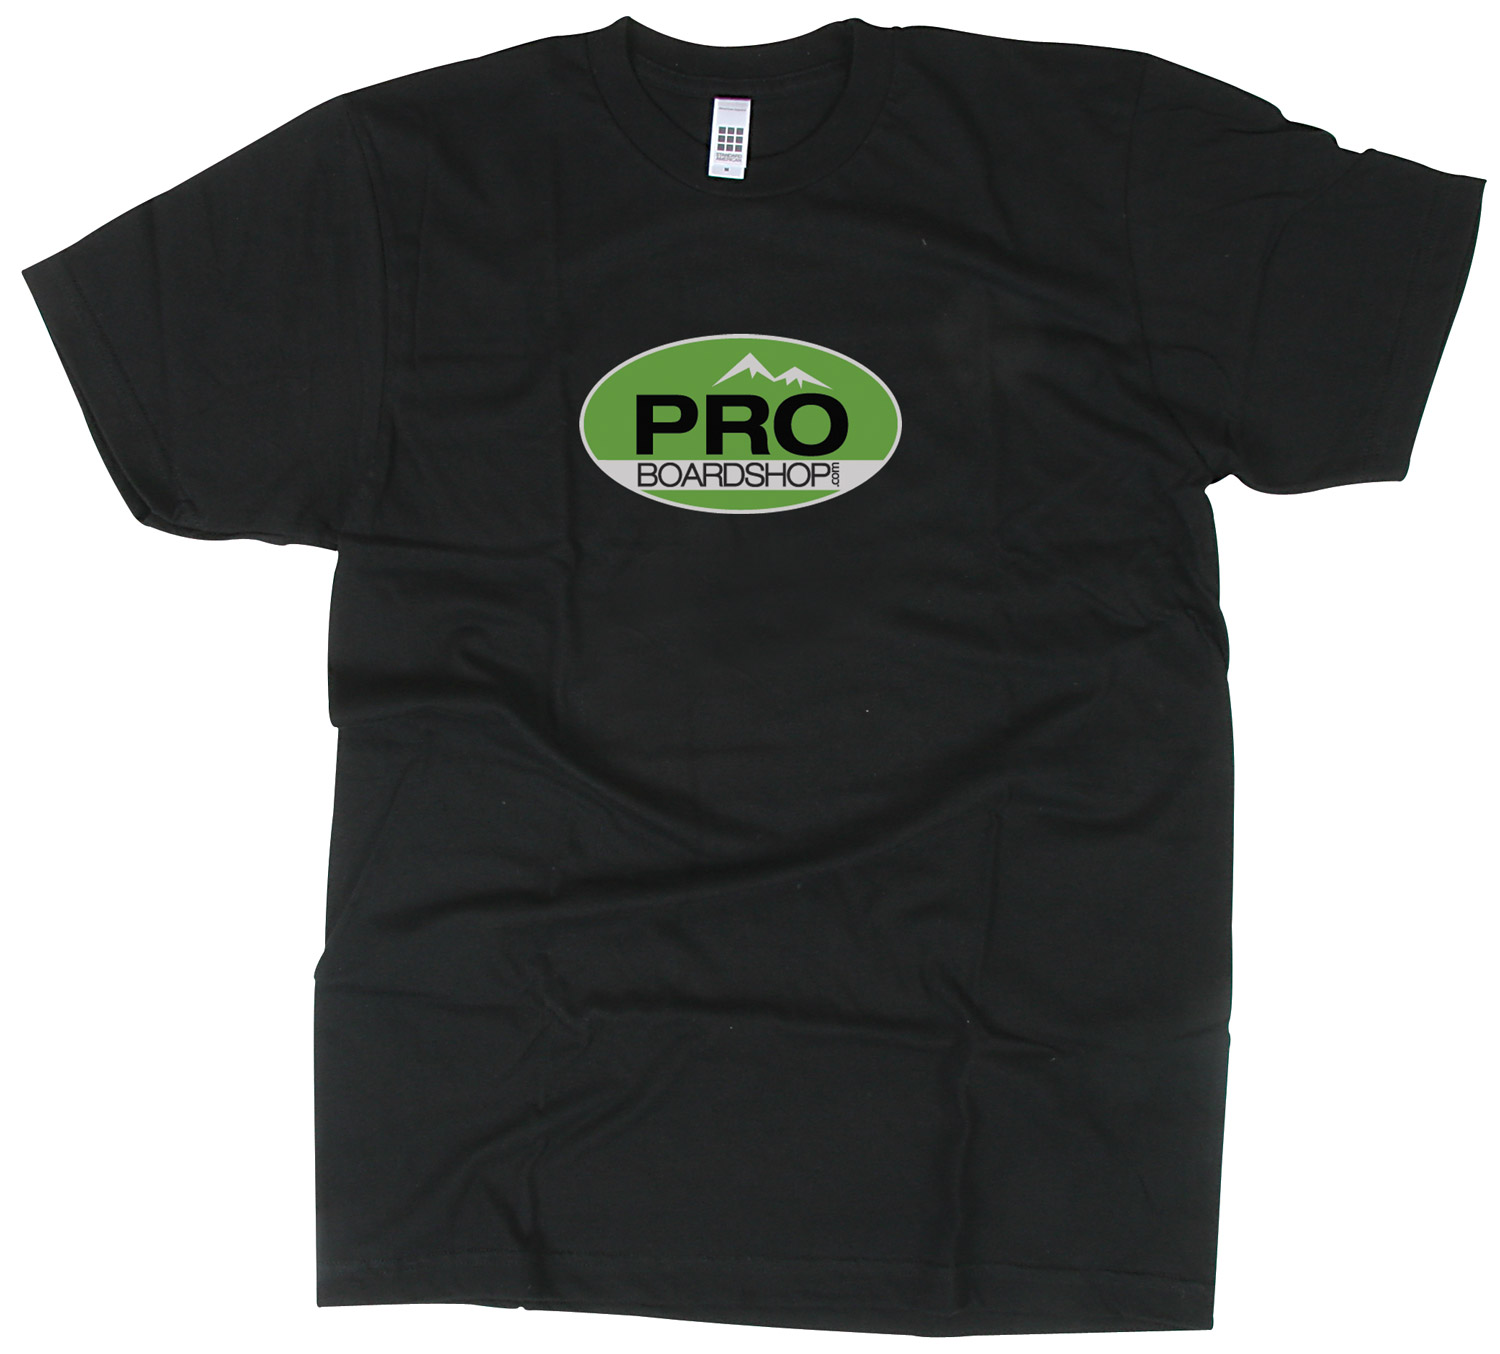 Show your support! Sport a Proboardshop Ovalteen T-Shirt. All Proboardshop T-Shirts live up to the quality you'd expect from a boardshop that's been serving boarders since 1982. - $7.95